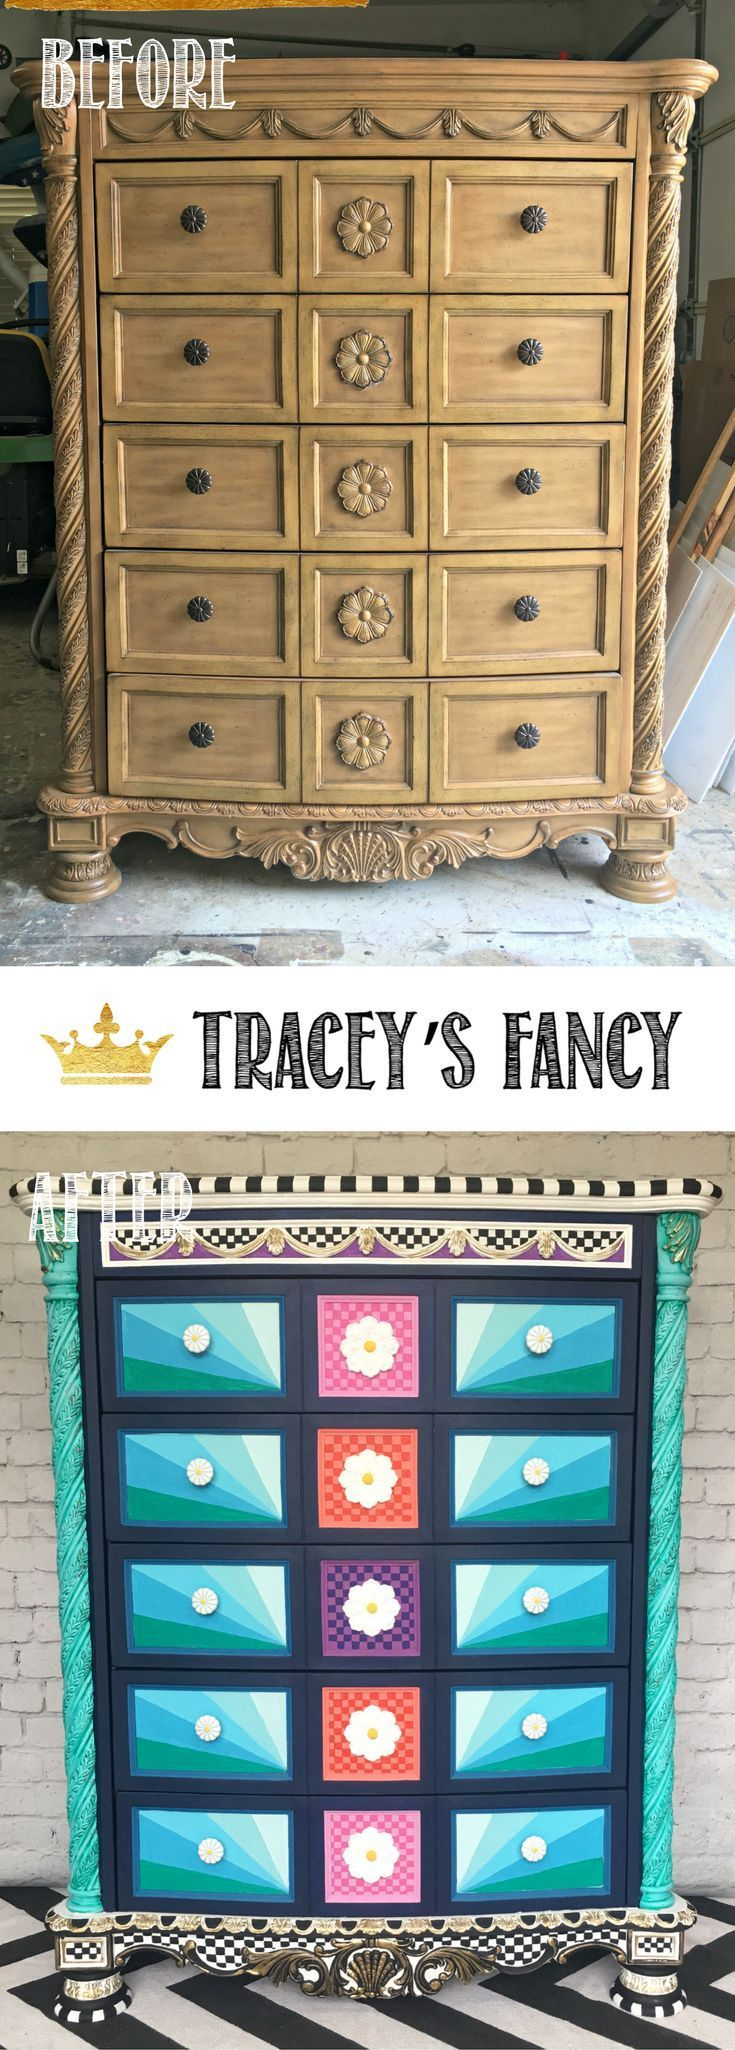 2839 best Painted Furniture Projects images on Pinterest ...